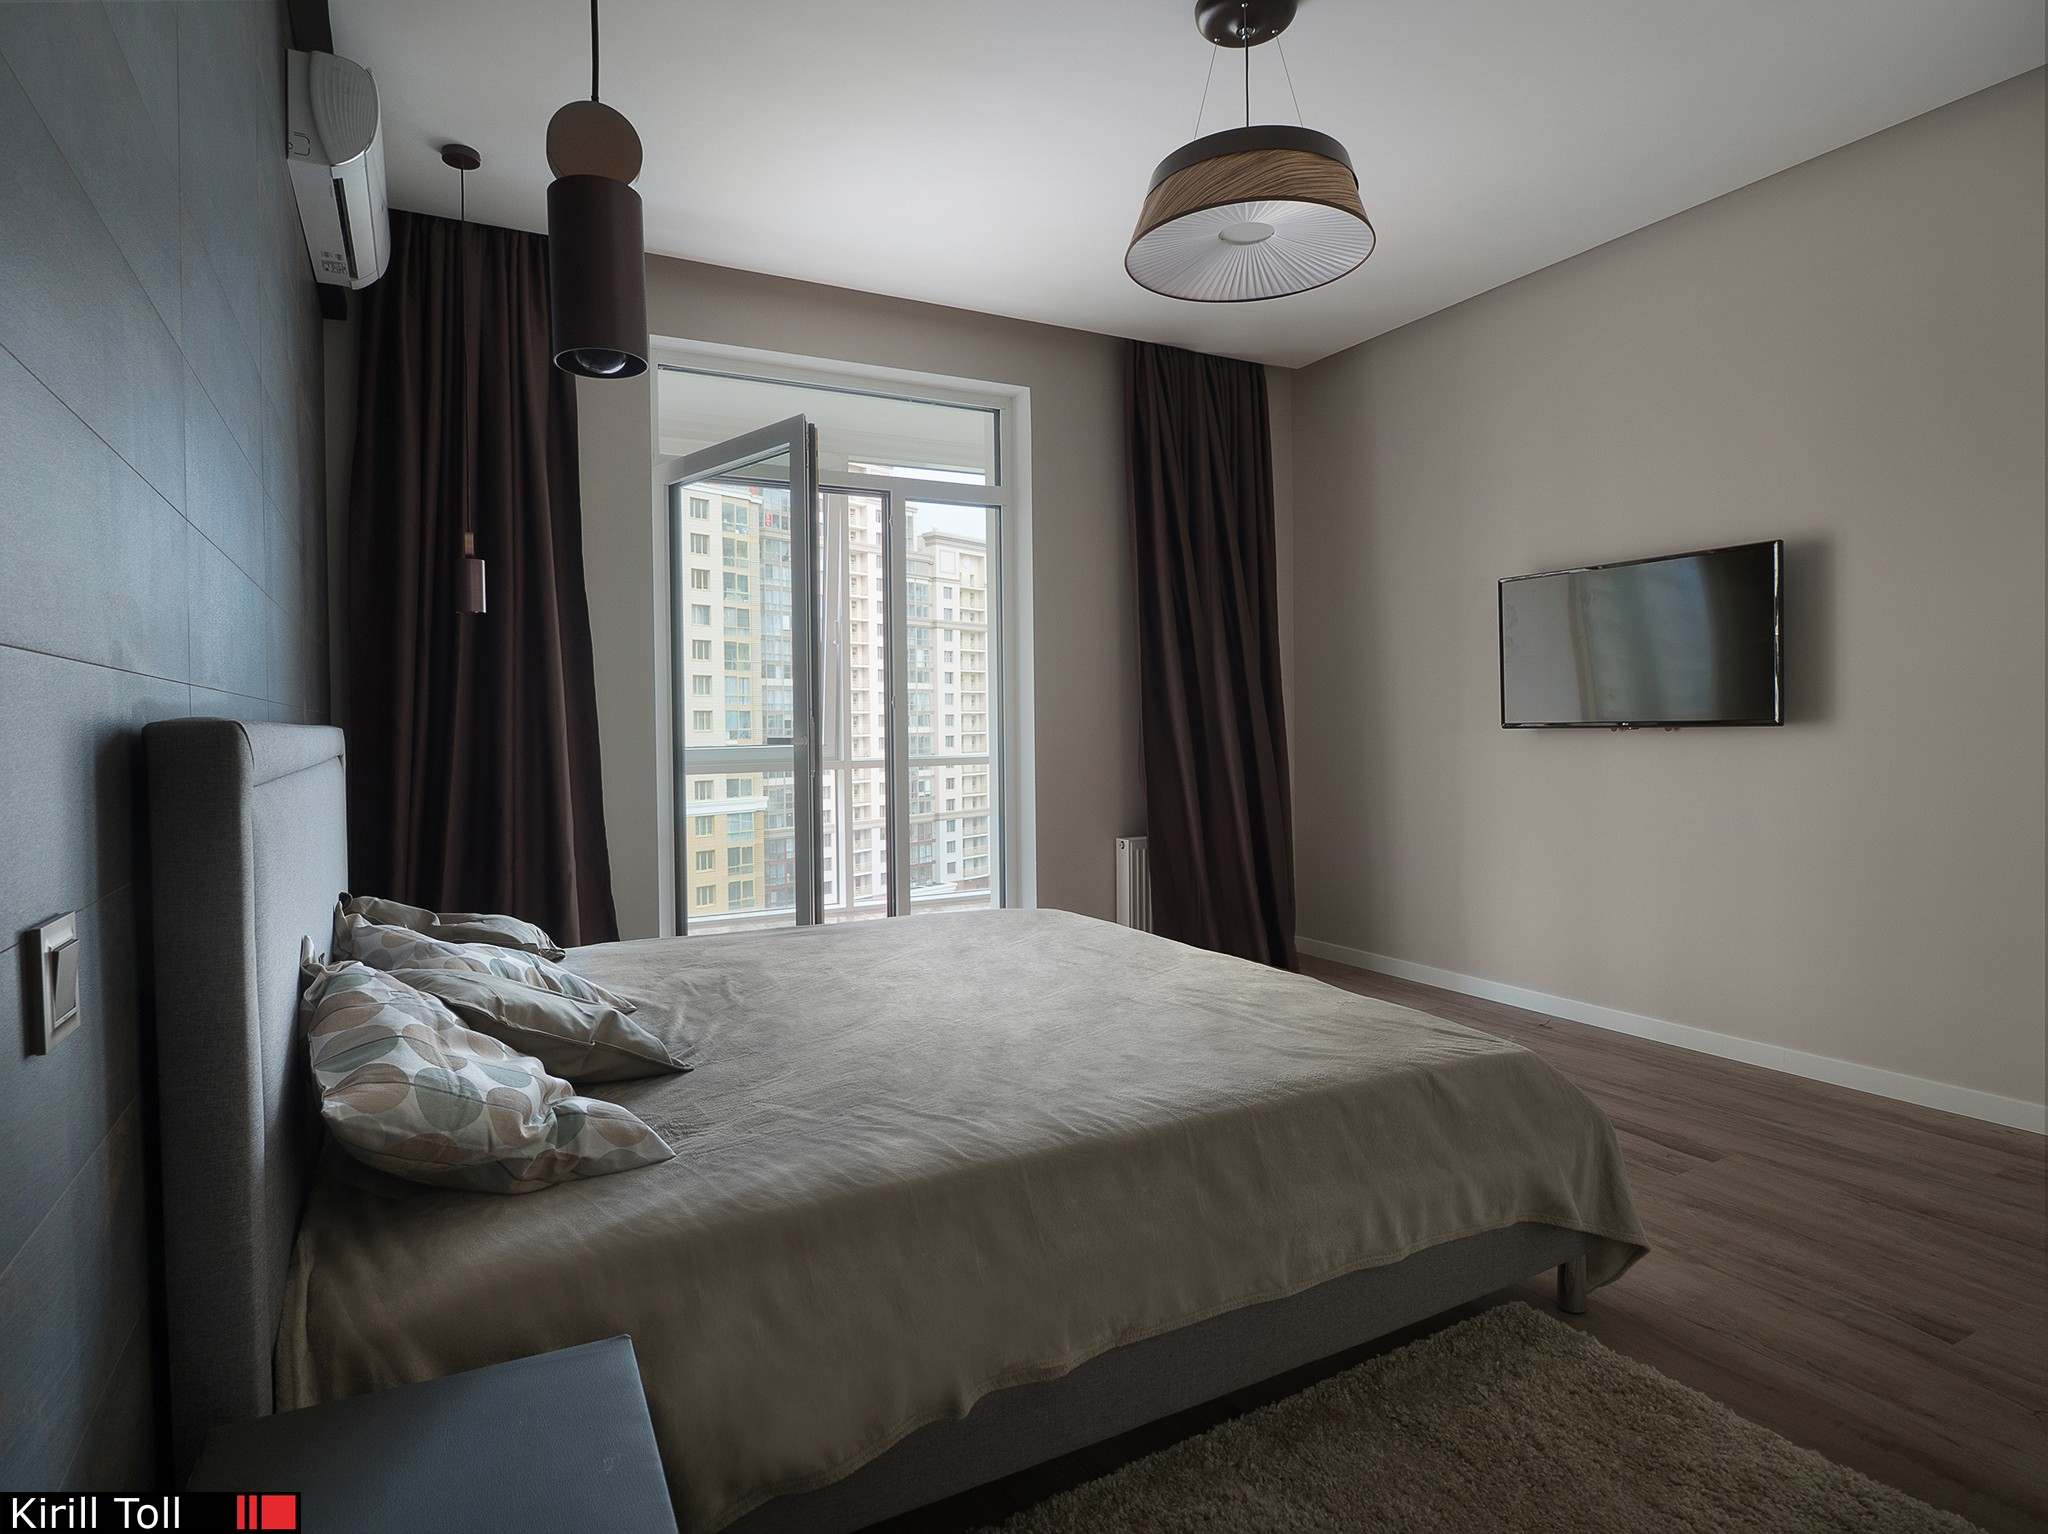 Photos for a realtor Interior of an apartment for rent or sale. Photographer Kirill Toll